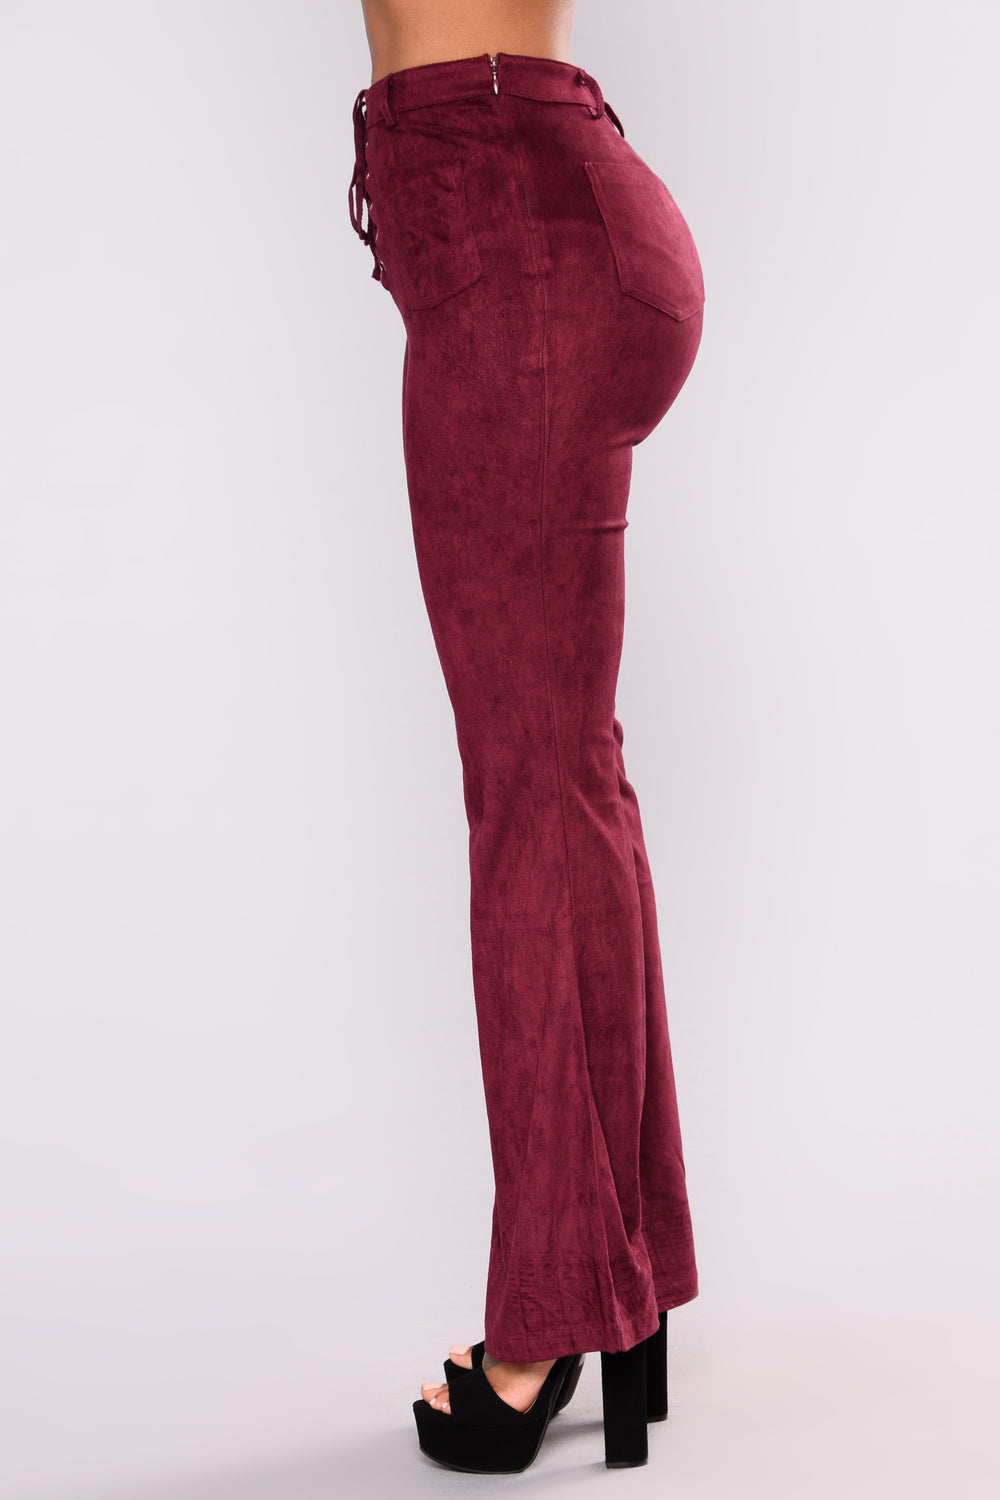 Martine Suede Pants - Wine